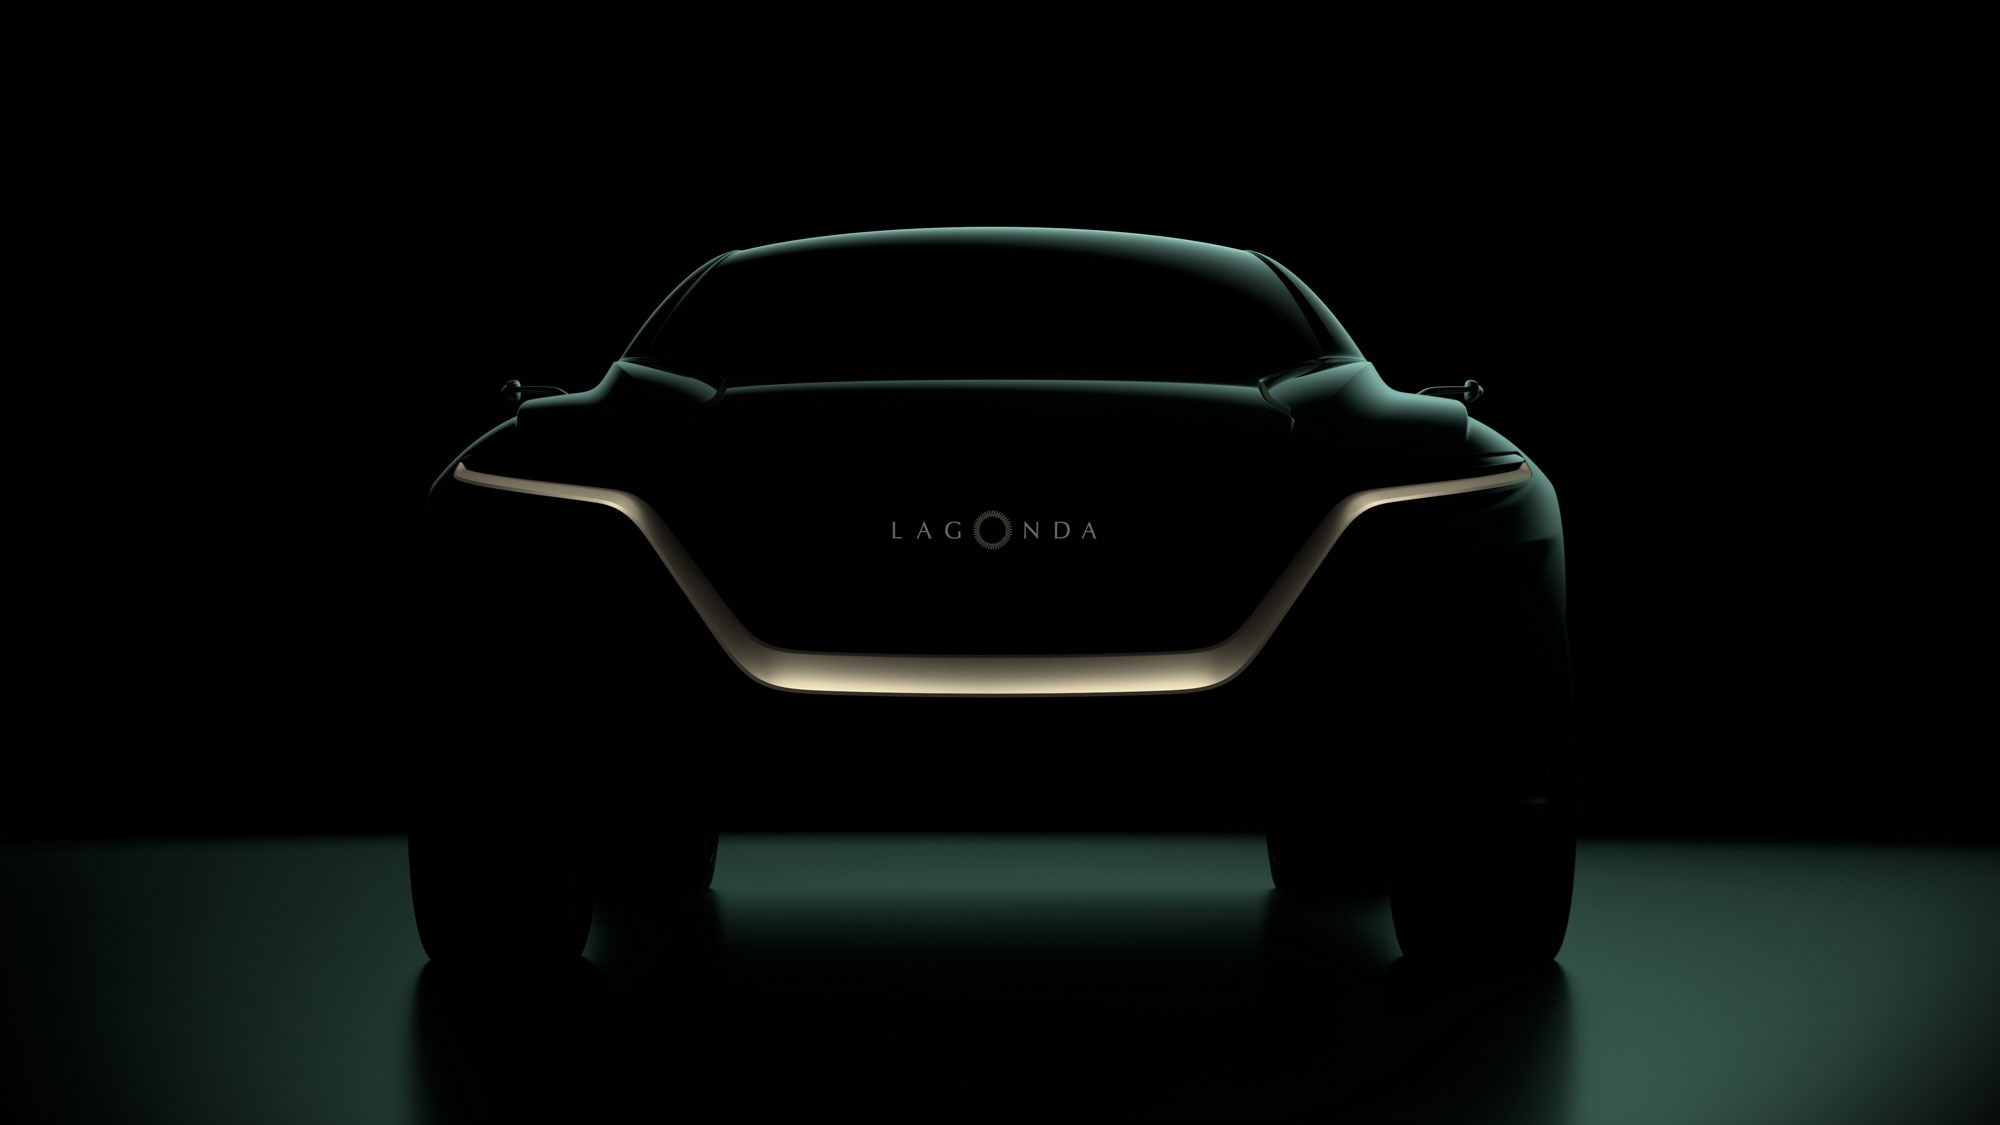 Aston Martin to preview second Lagonda model at Geneva